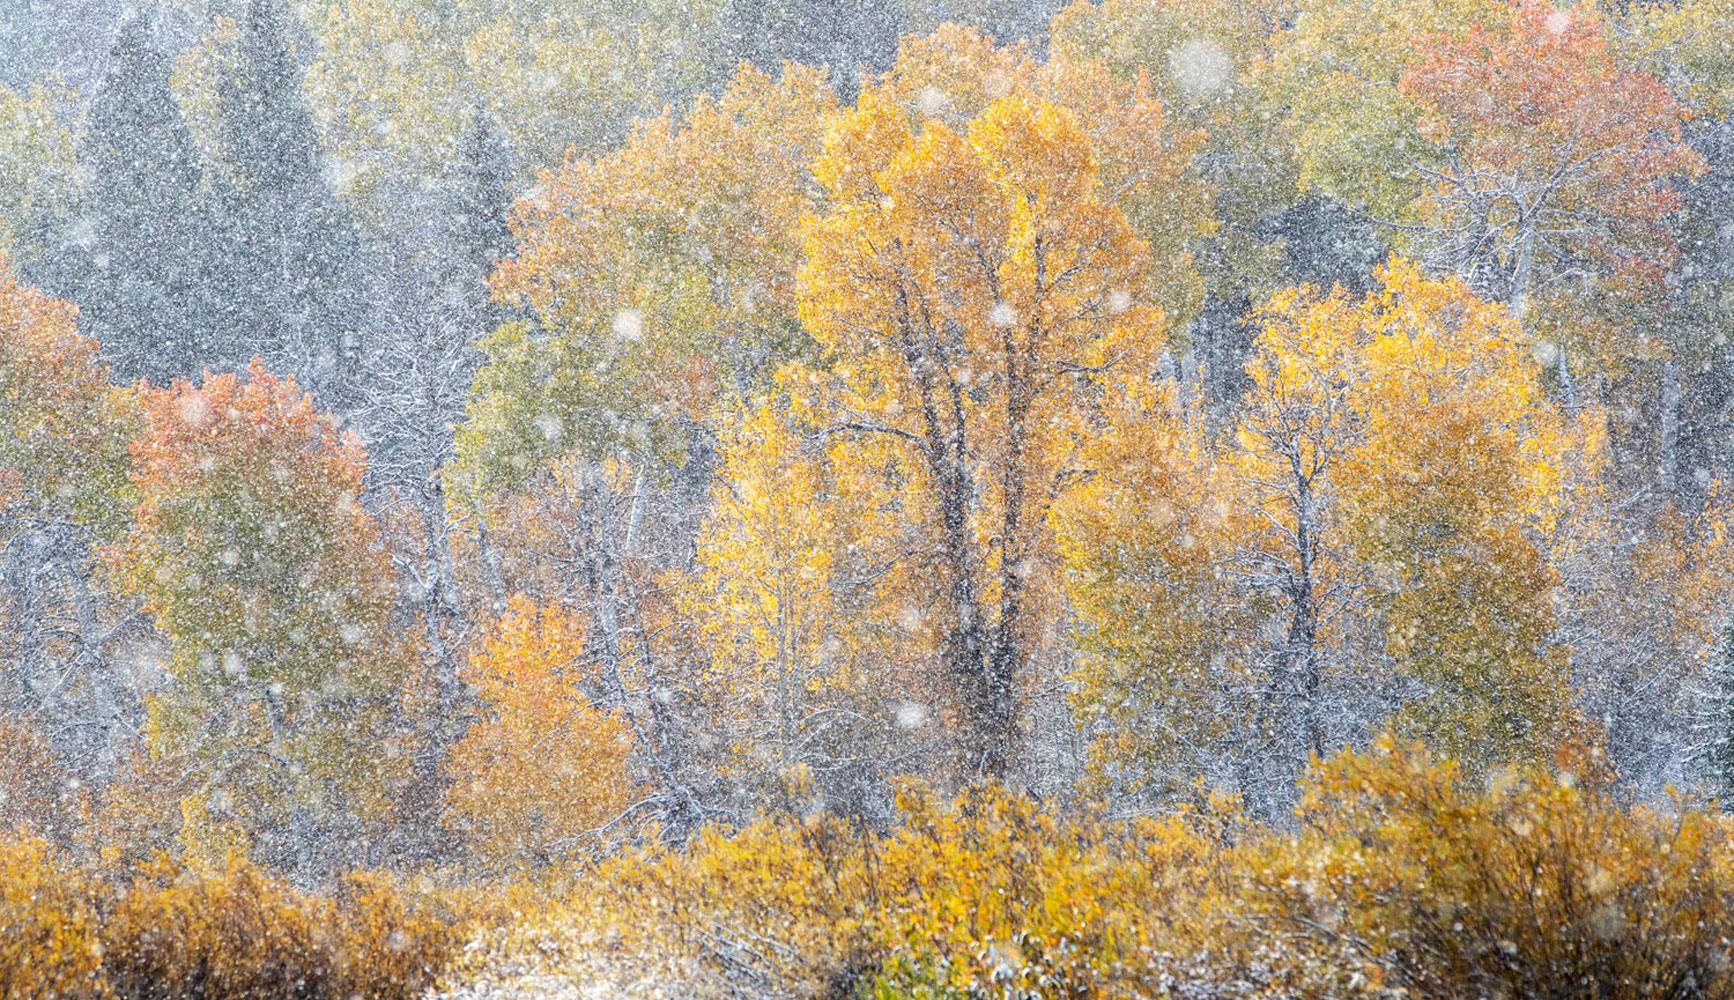 Autumn's colors are always fleeting, especially in the Grand Tetons, where winter's snows are on the wind.